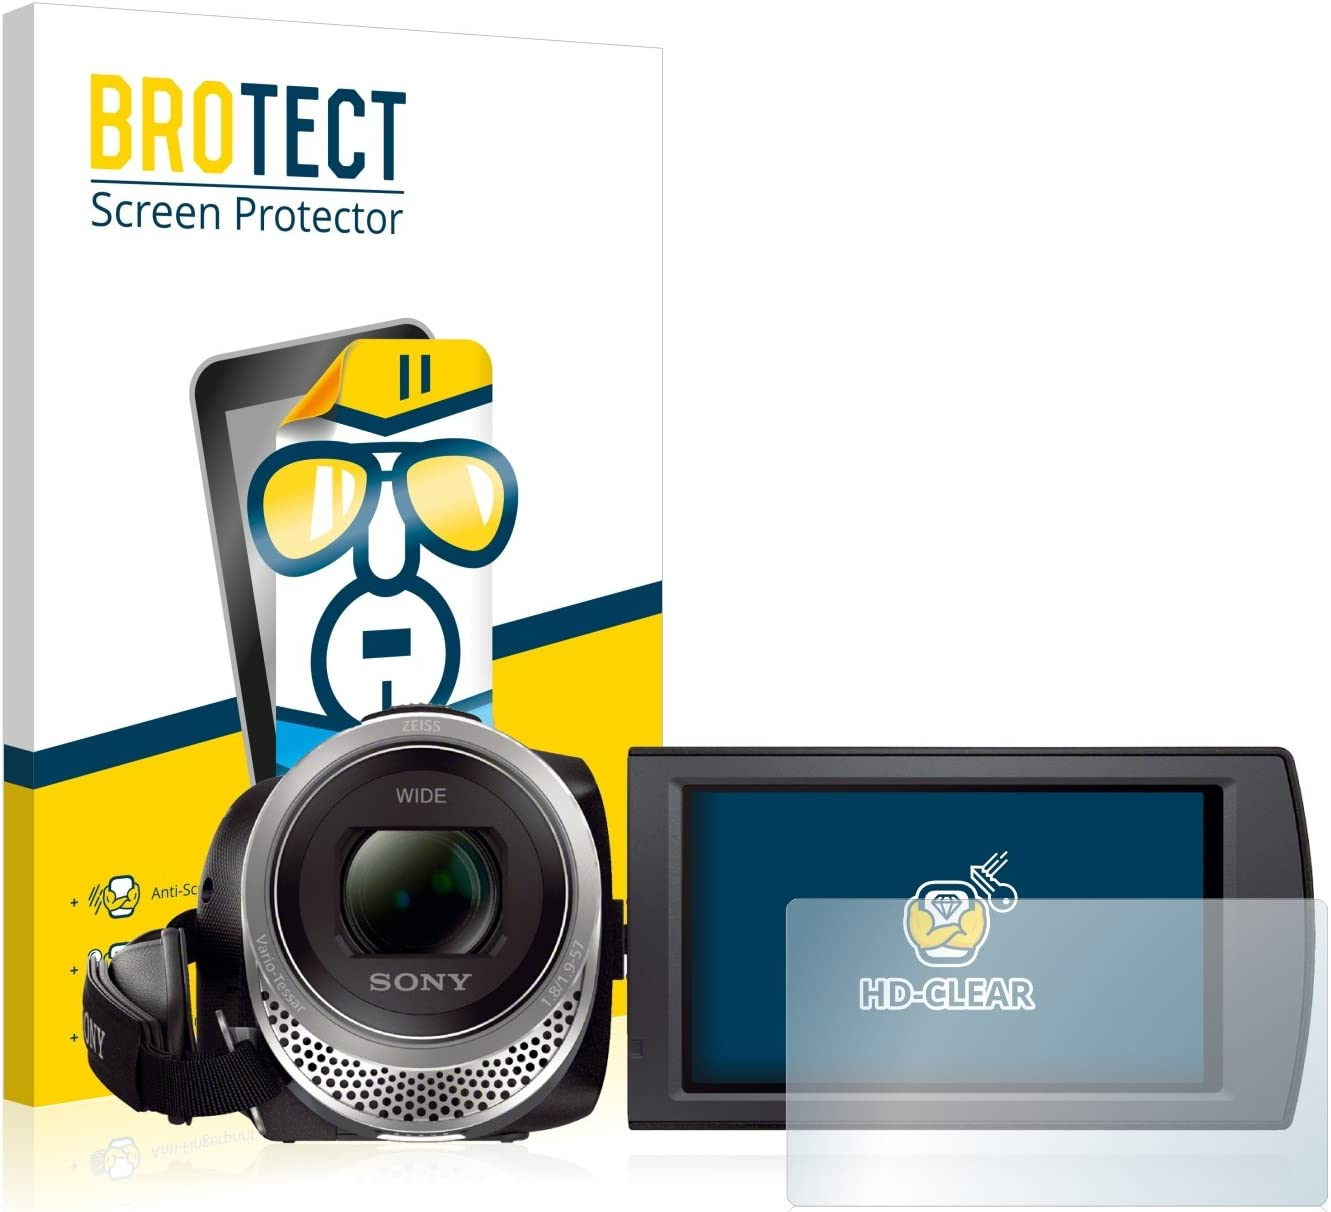 Hard-Coated Dirt-Repellent 2X BROTECT HD-Clear Screen Protector for Sony FDR-AX53 Crystal-Clear